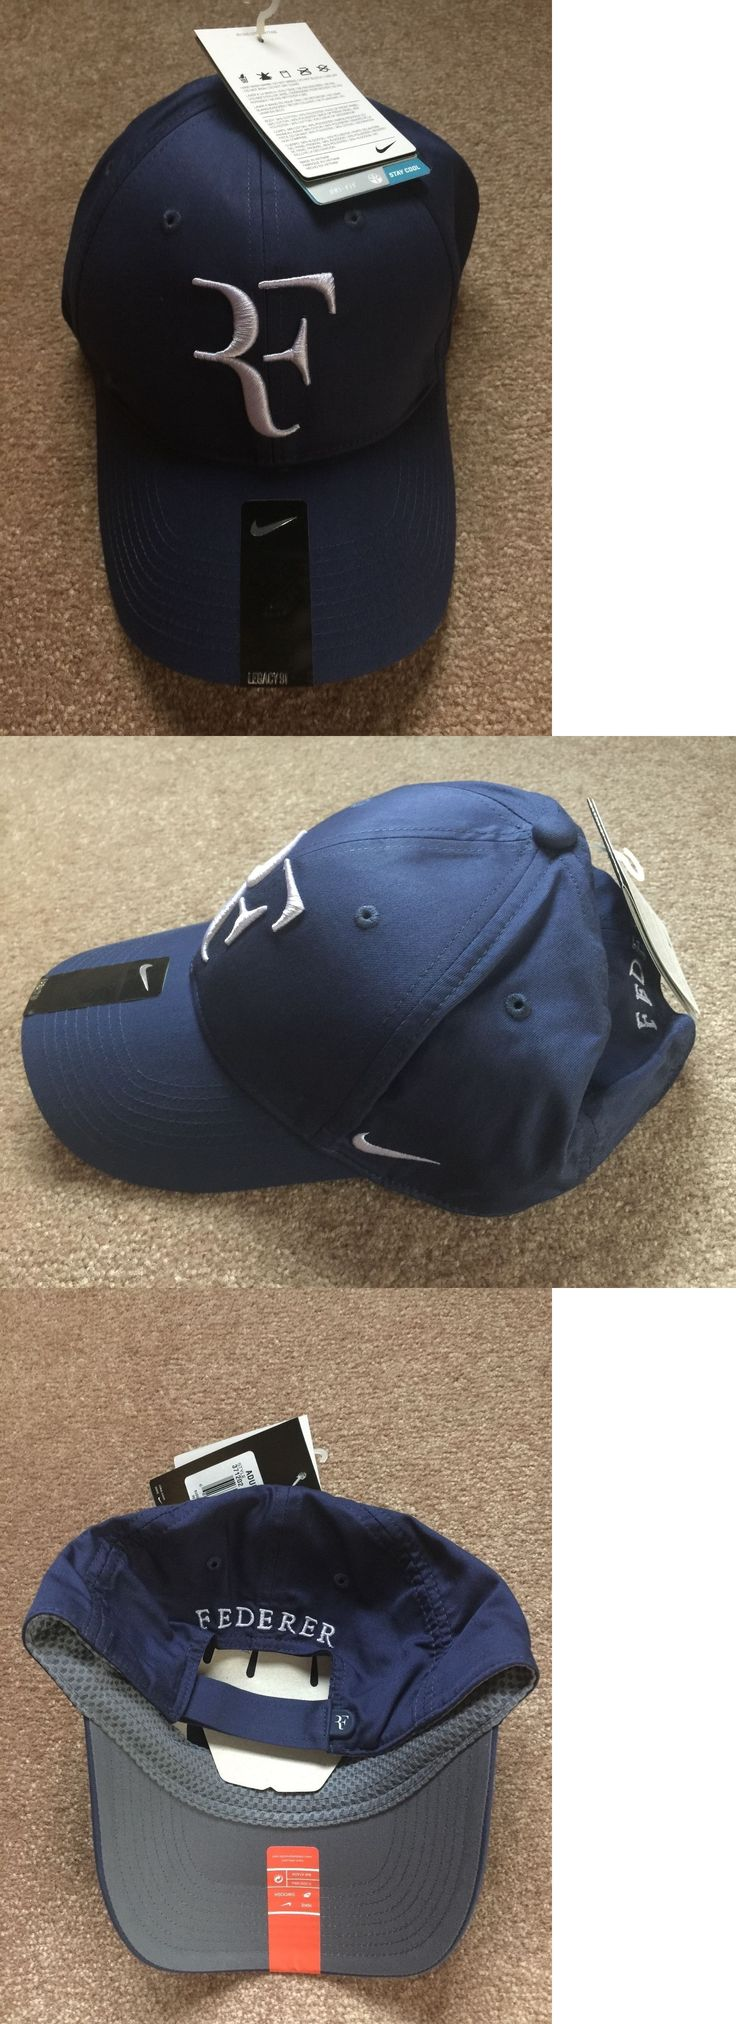 Hats and Headwear 159160: New Nike Roger Federer Hat 371202 410 -> BUY IT NOW ONLY: $40 on eBay!